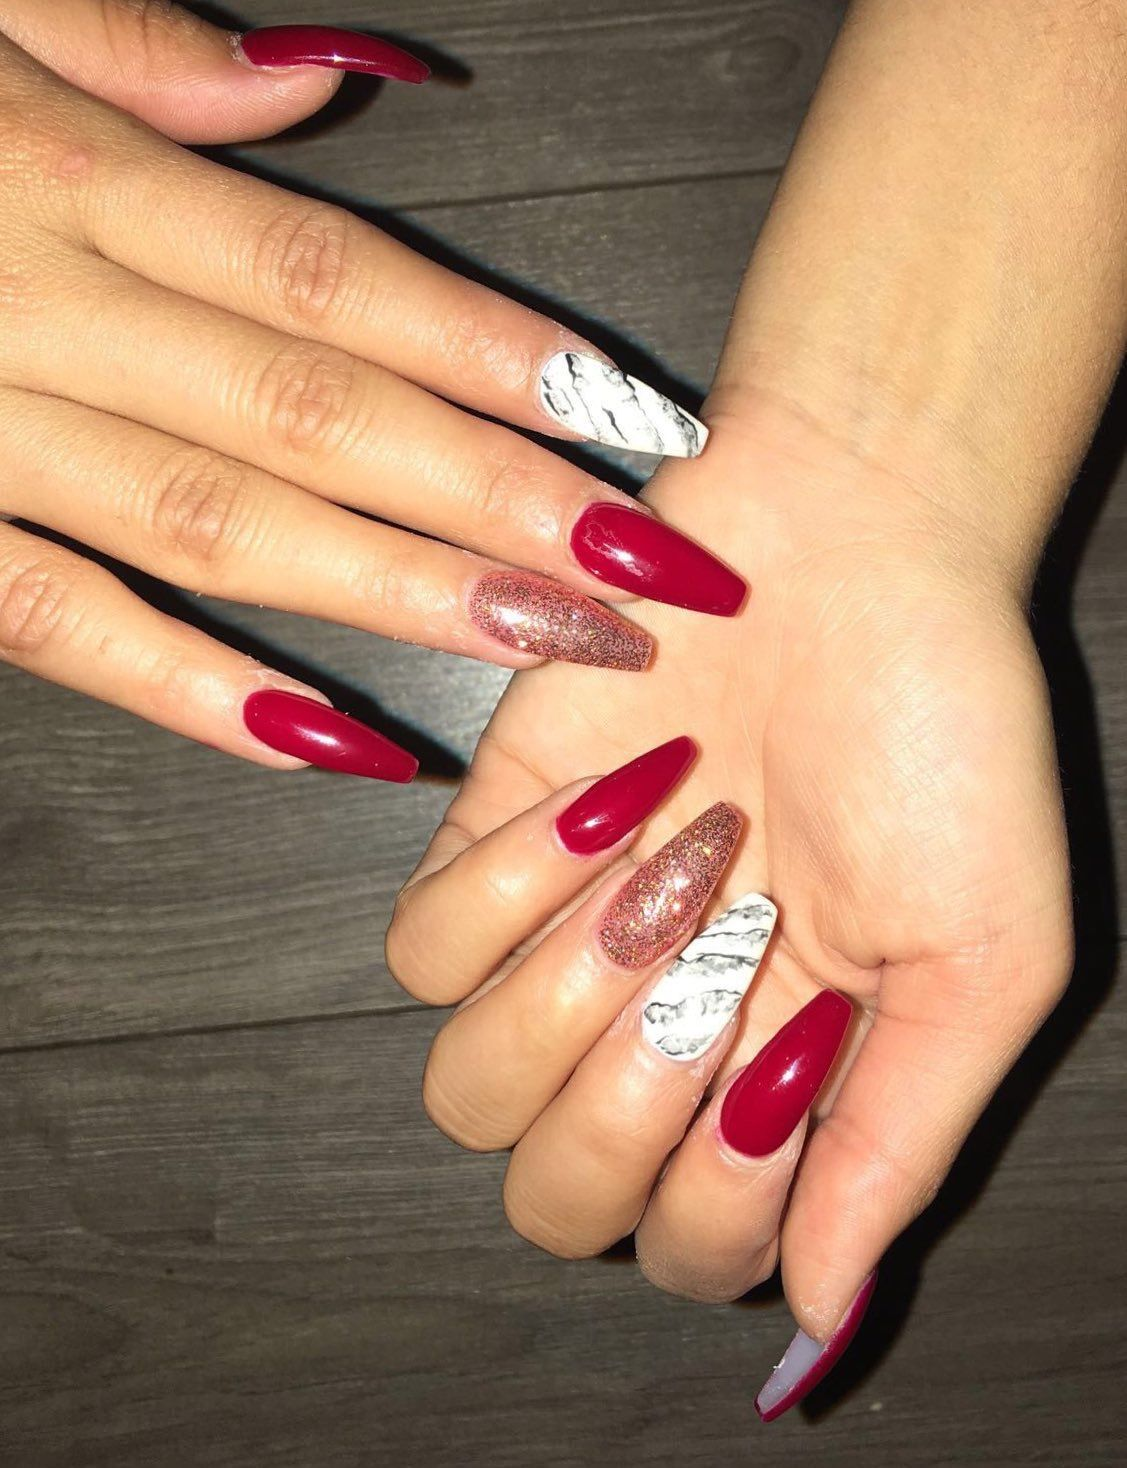 Pin by Wendy Battle on {Jewelry, Nails, and etc} | Pinterest | Nail ...